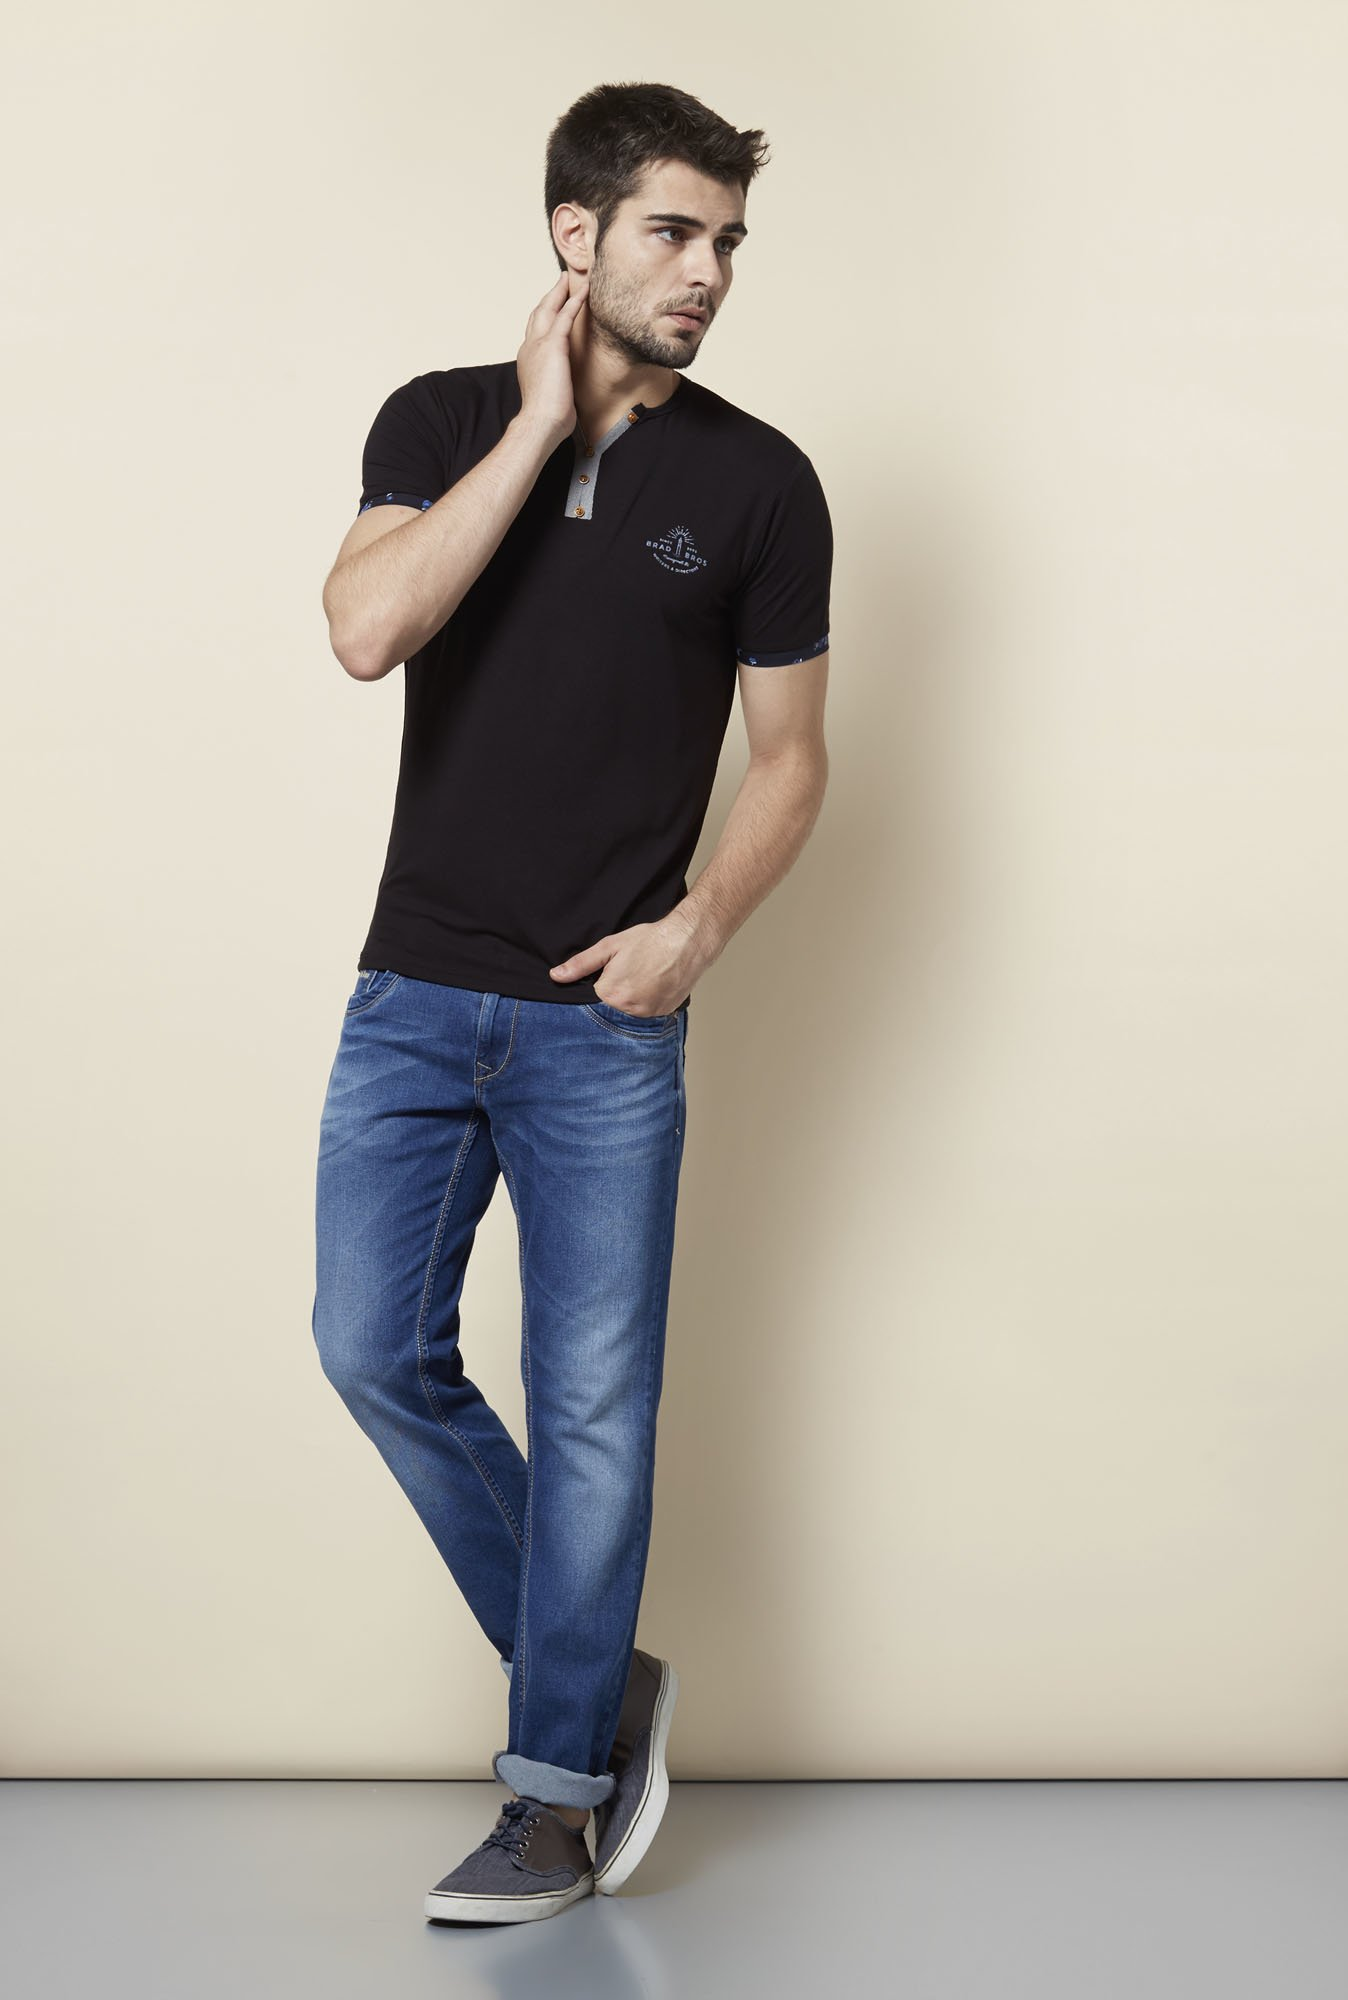 Lawman Black Slim Fit T shirt